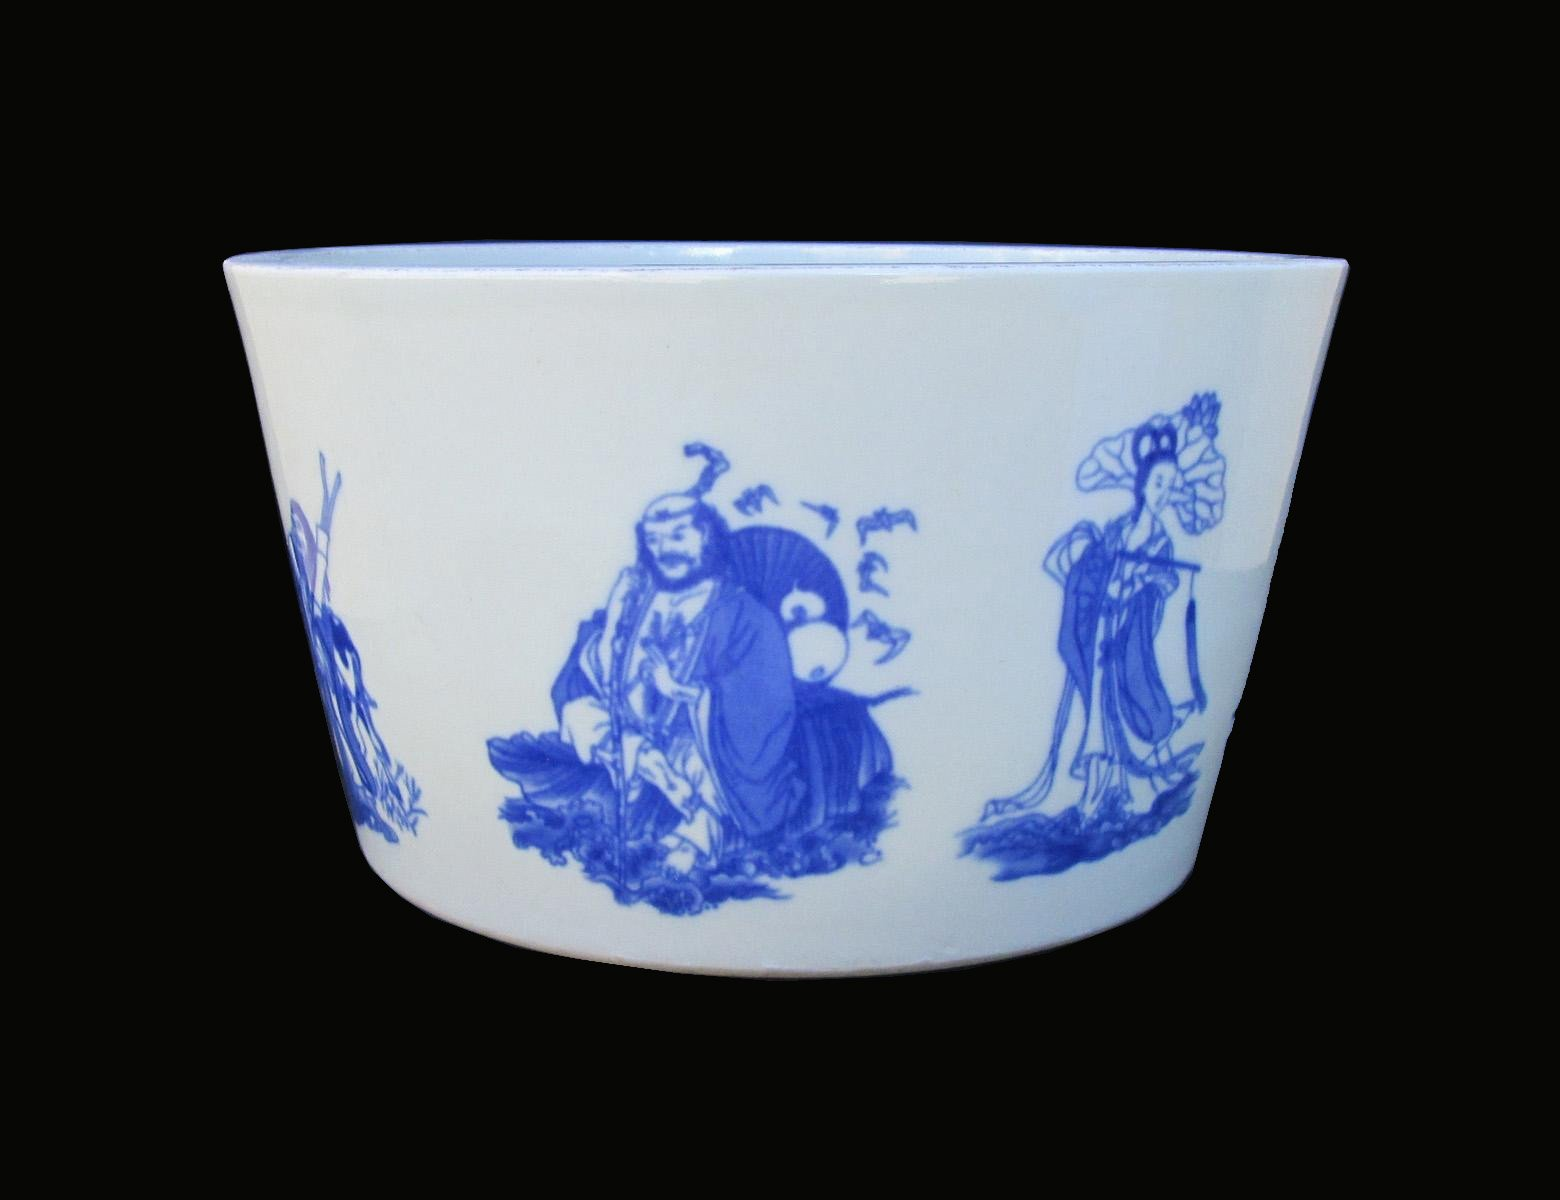 Chinese Handmade Blue & White Eight Immortals Painting Porcelain Pot af989 by Vase & Plate